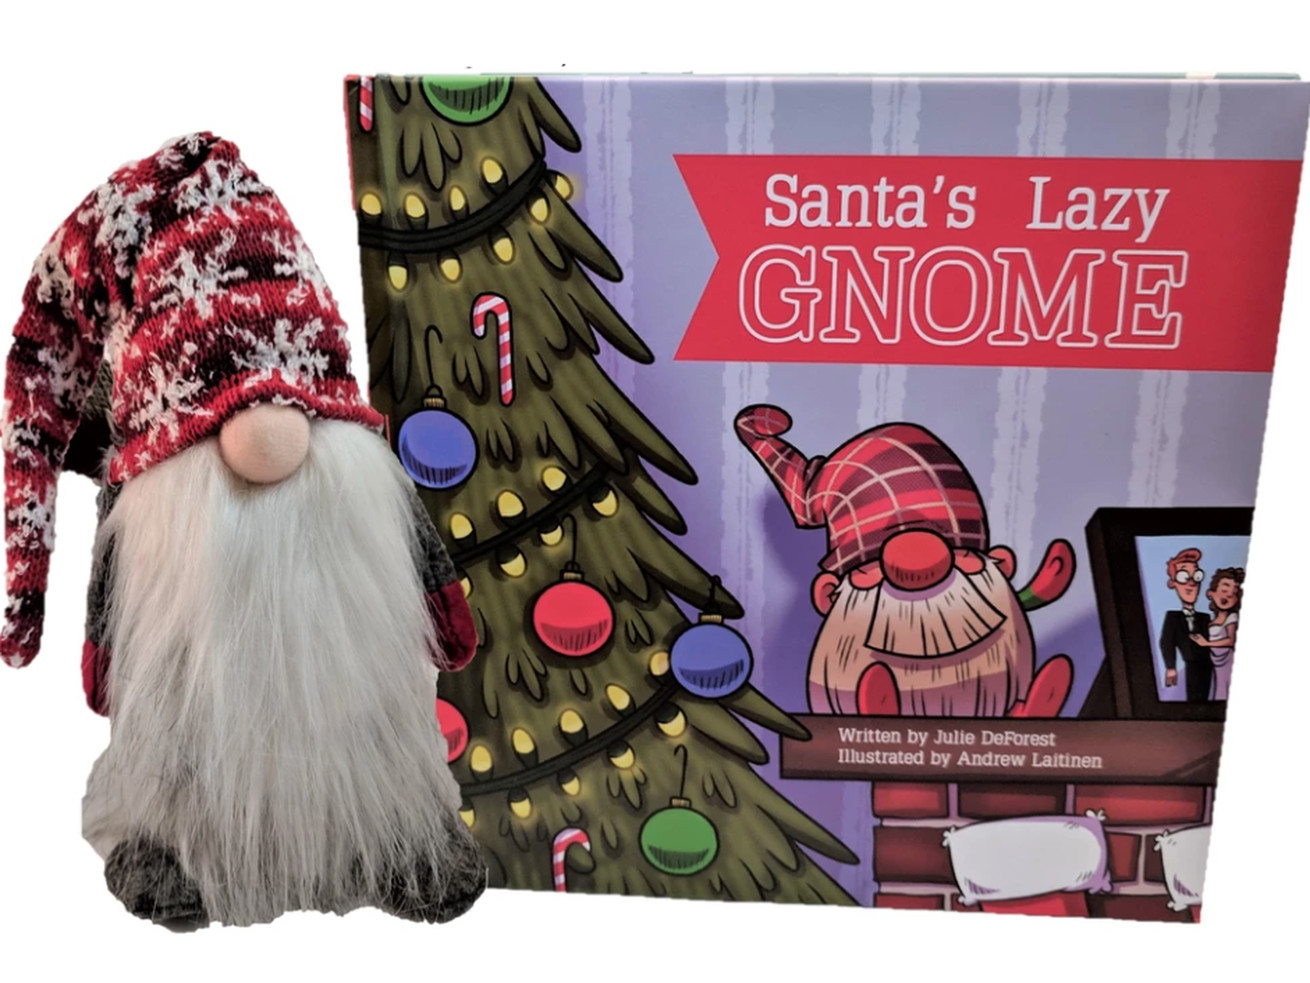 'Santa's Lazy Gnome' Is Here To Keep Your Kids In Check With Zero Effort